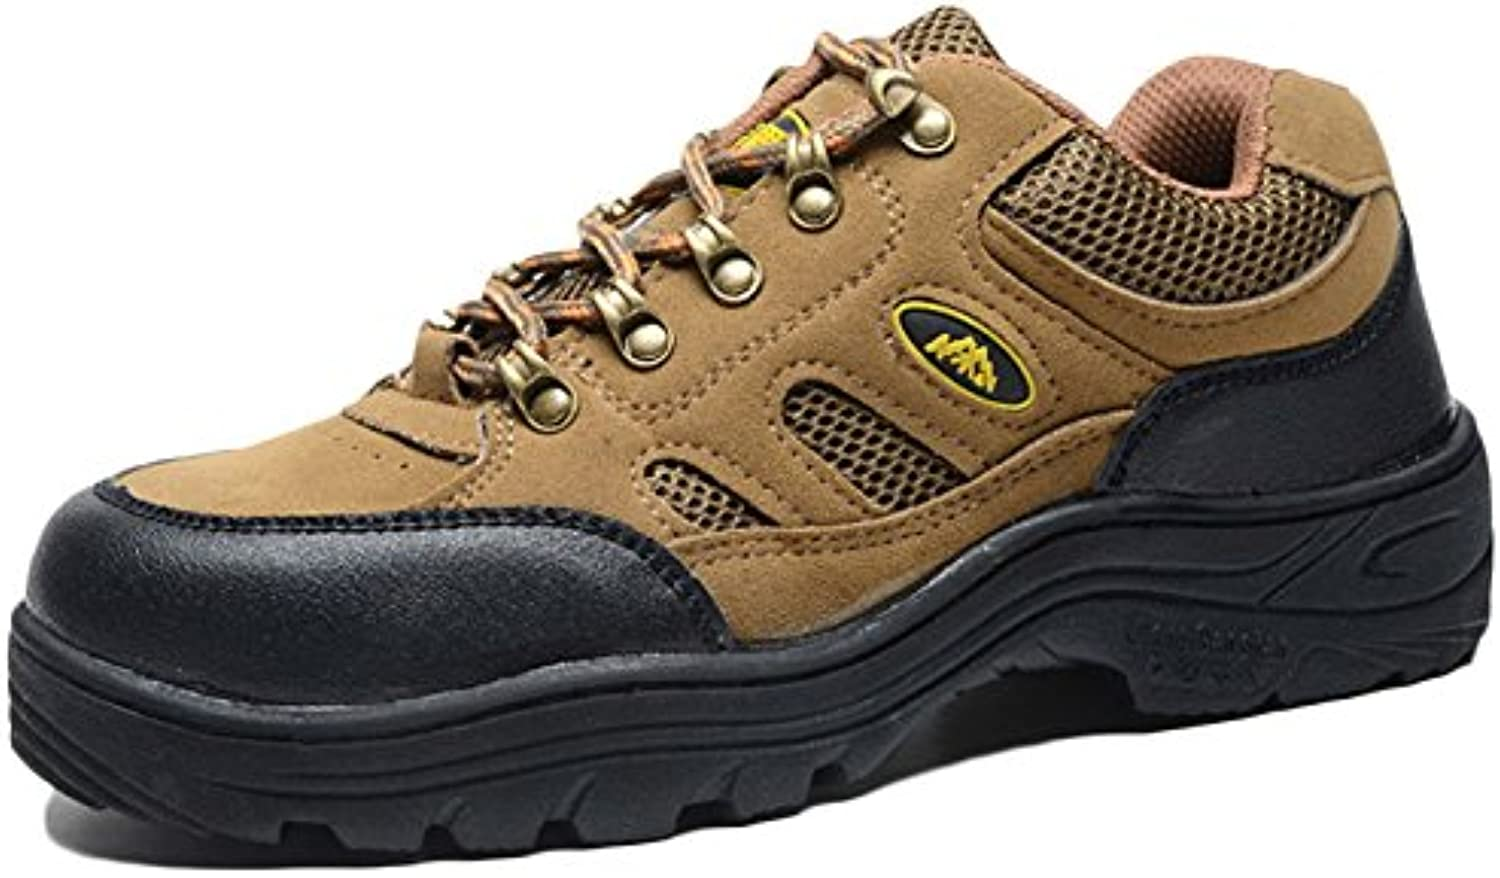 Zapatillas De Senderismo Hombre Impermeable Low Rise Shoes Zapato Walking Trainer Zapatillas De Verano Transpirables...